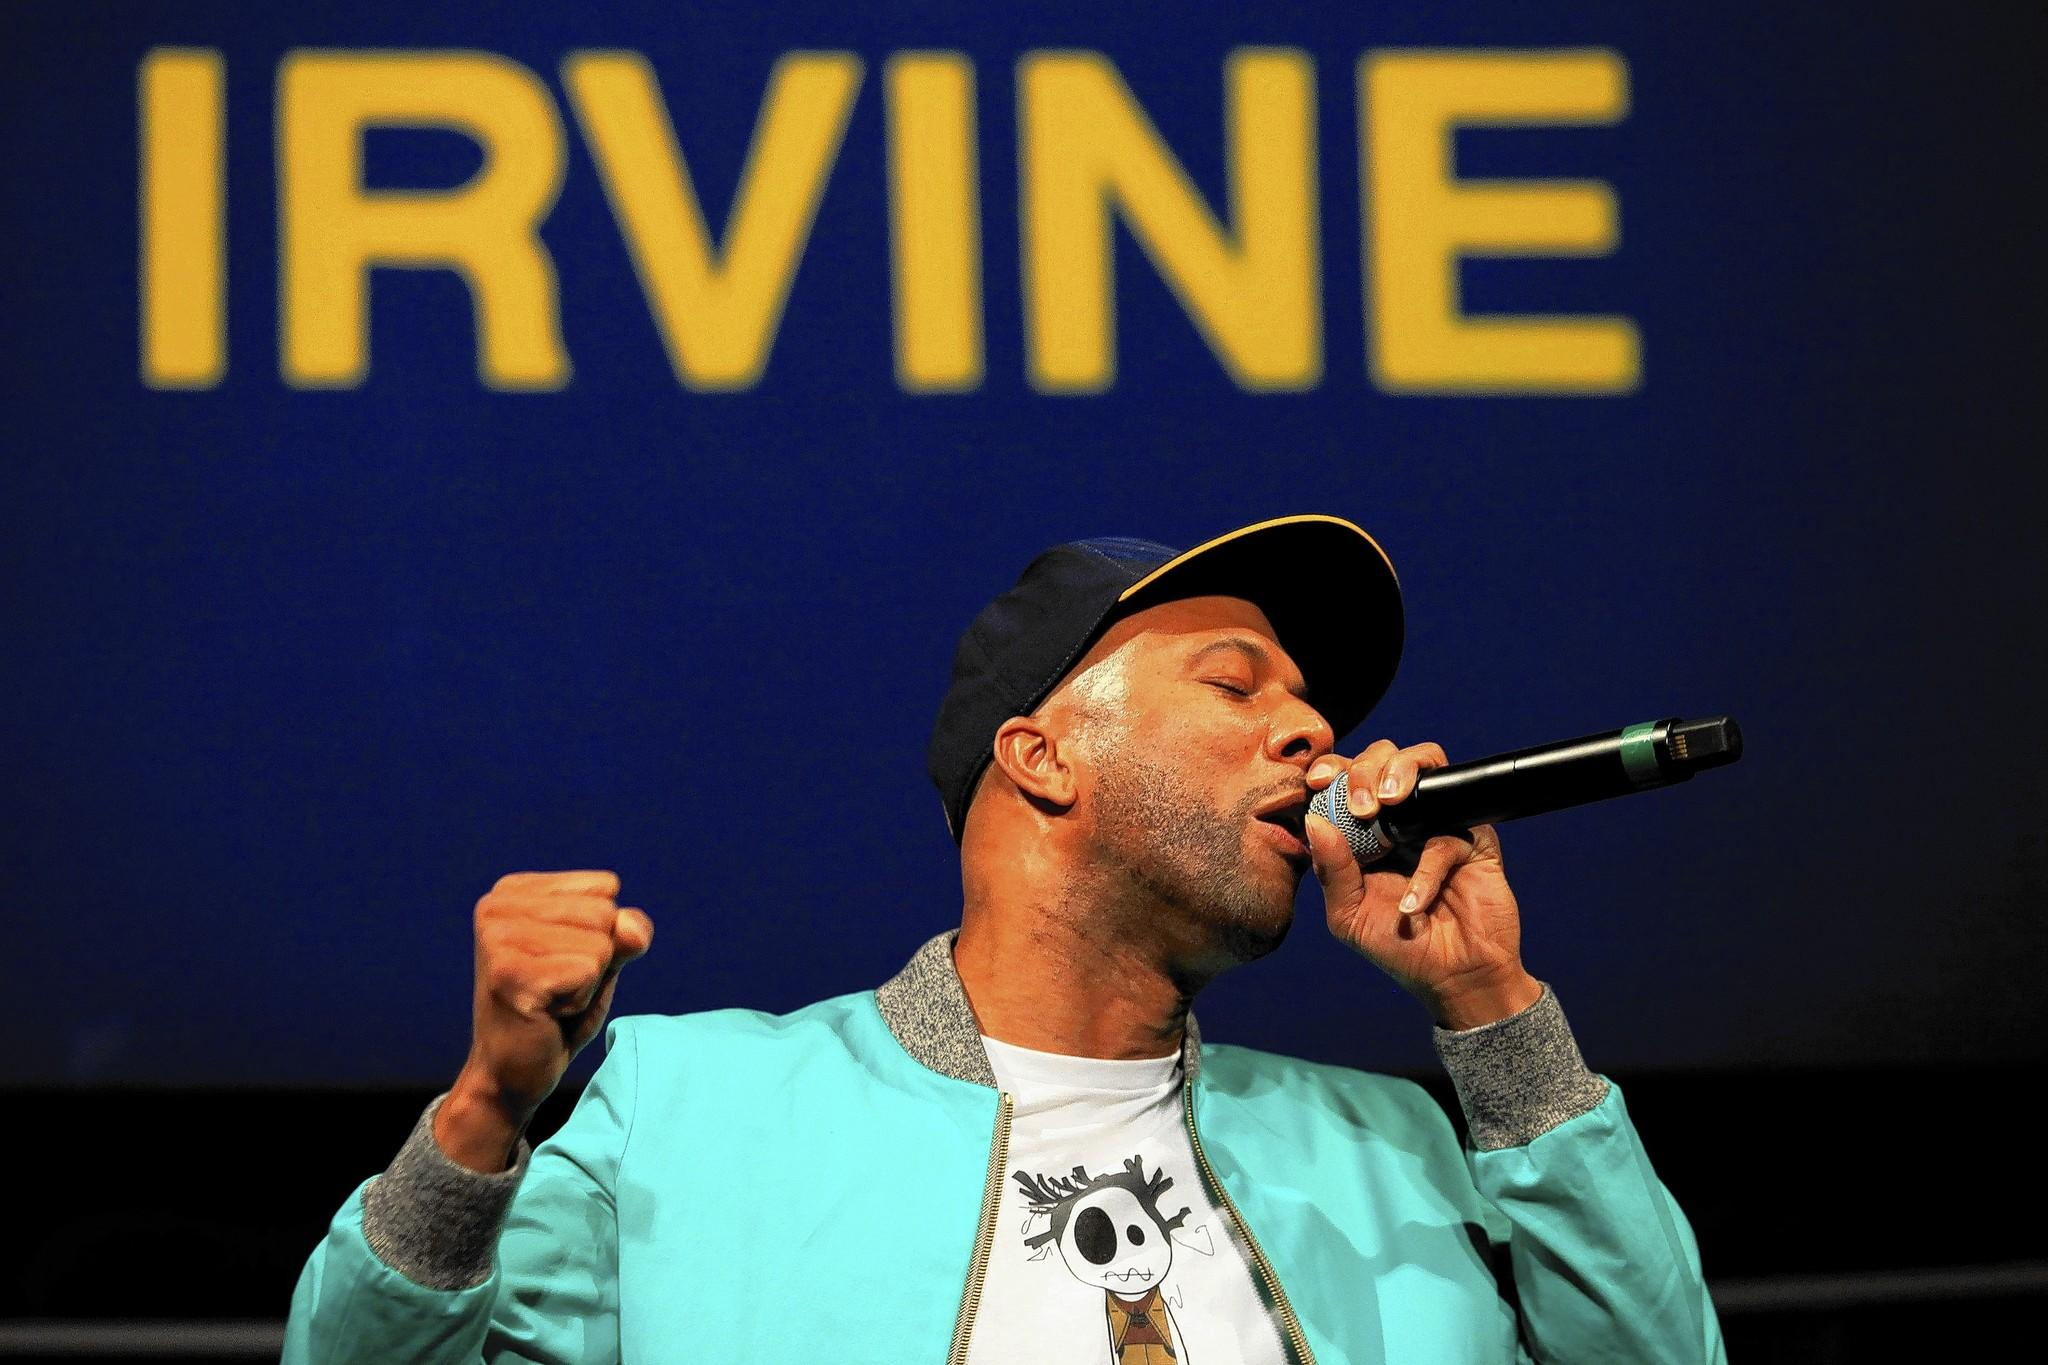 Common, Grammy Award-winning musician and actor, freestyles during New Narratives: Conversations on Identities & Culture at UC Irvine's Bren Events Center on Thursday.